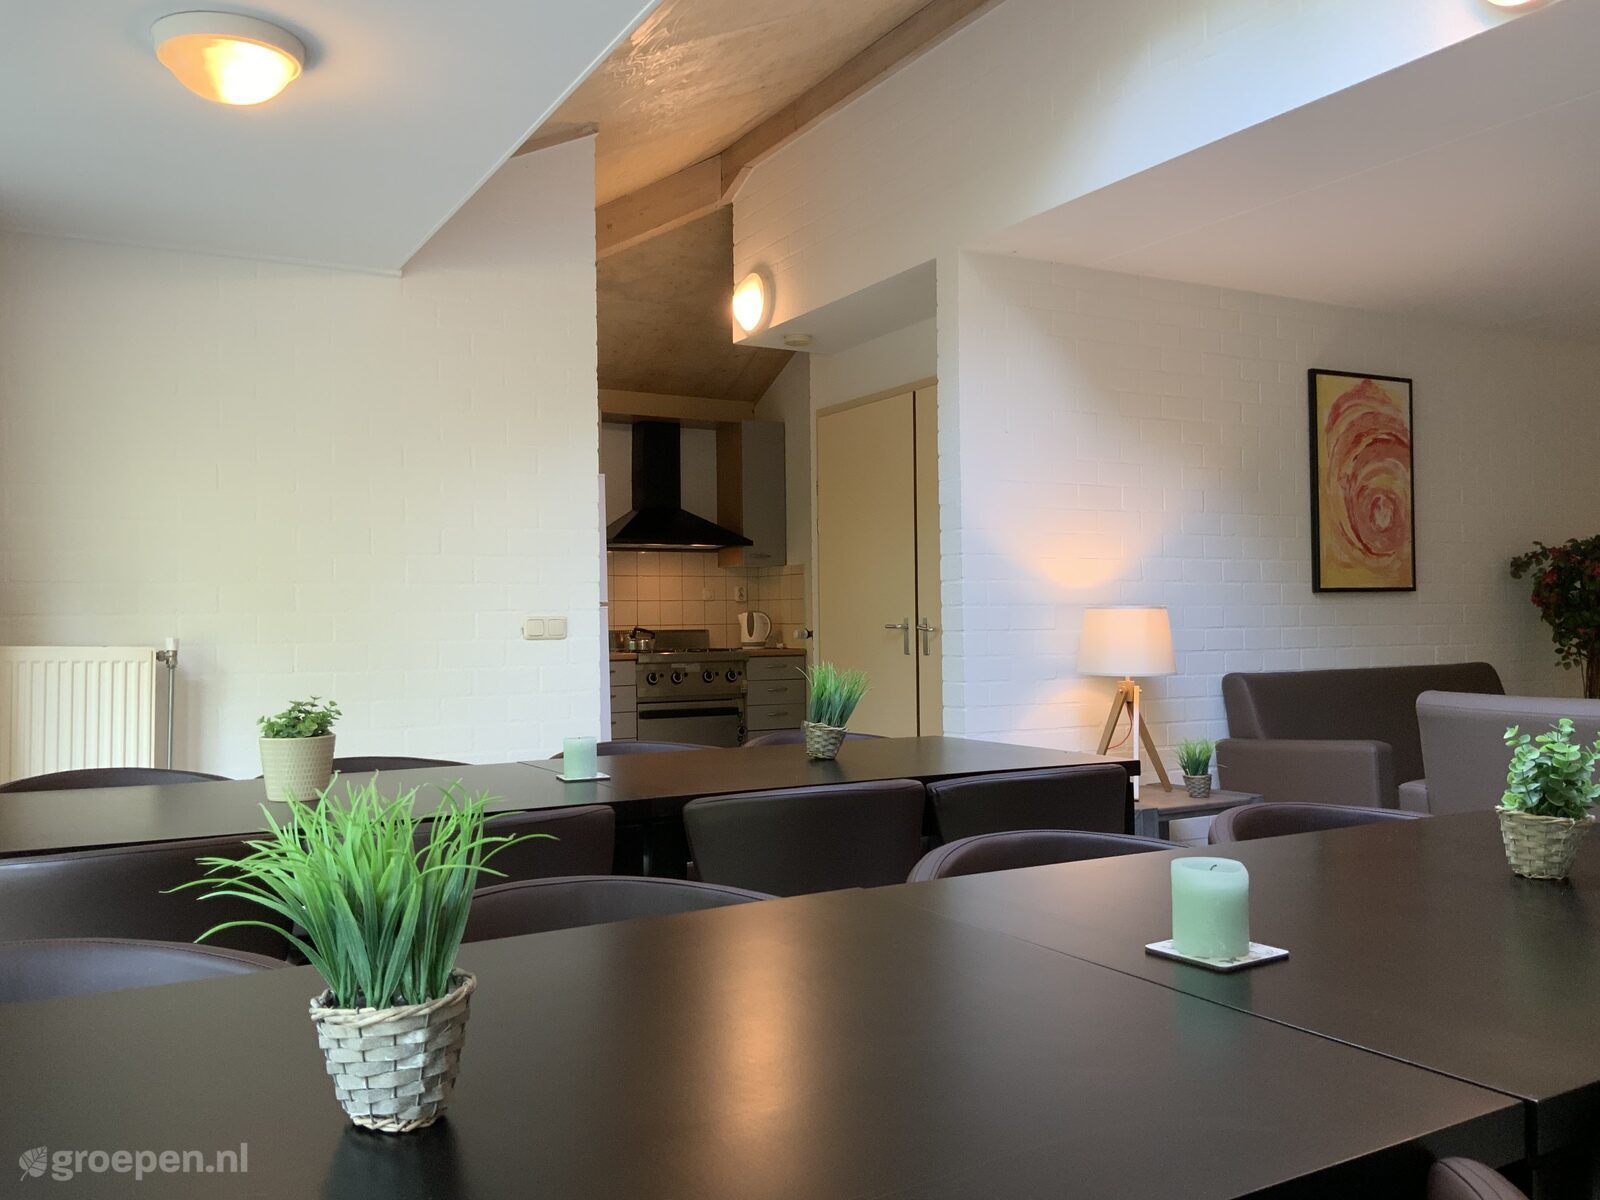 Group accommodation Lage Mierde